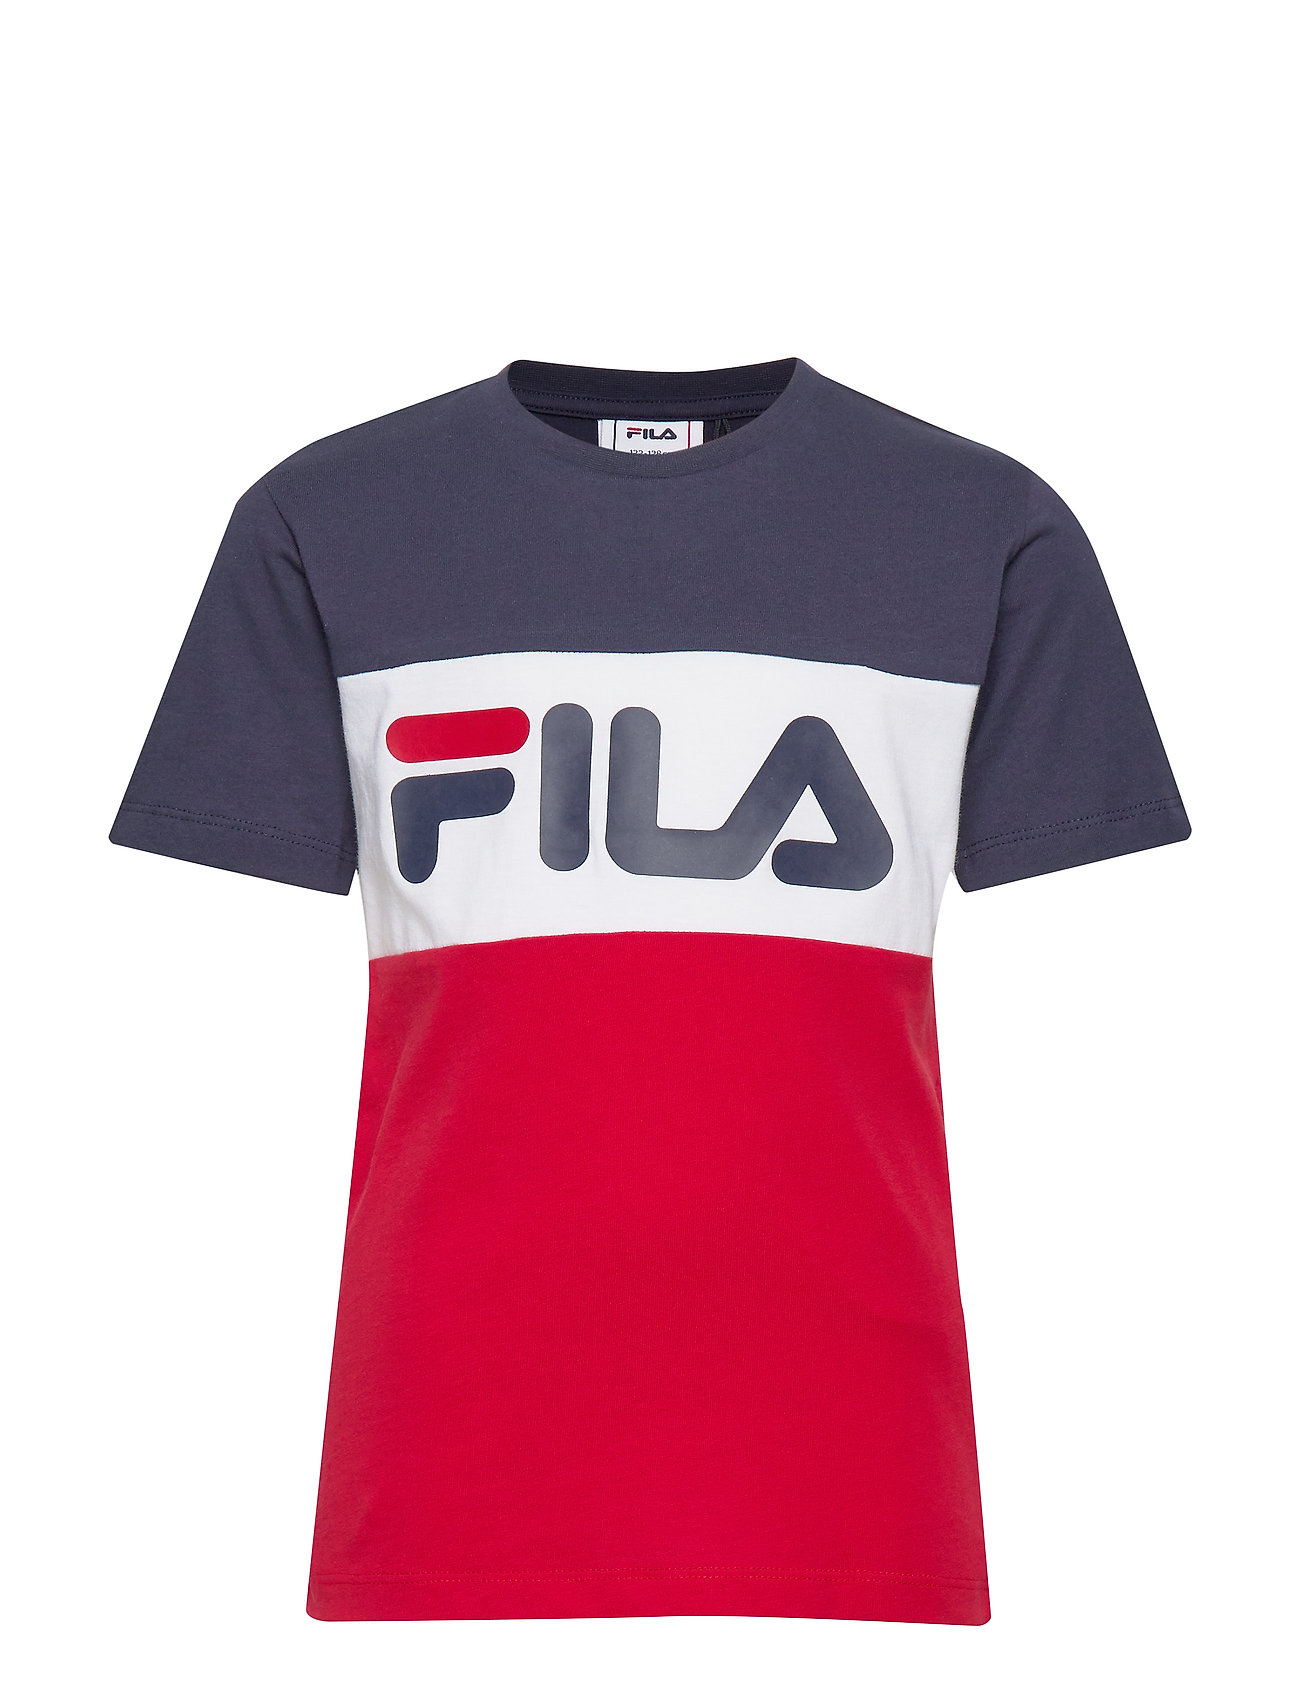 FILA KIDS CLASSIC DAY blocked tee - BLACK IRIS-TRUE RED-BRIGHT WHITE